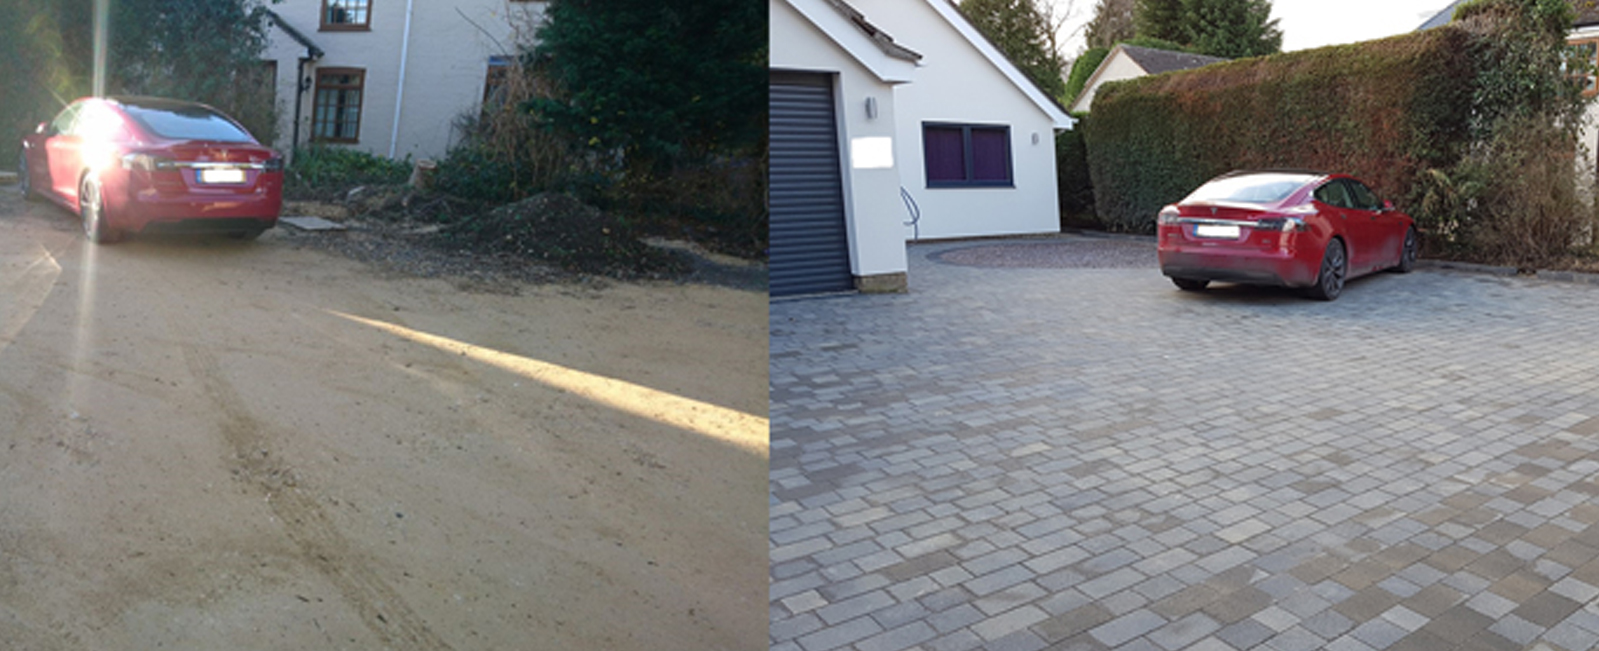 Why choose Cambs Driveways